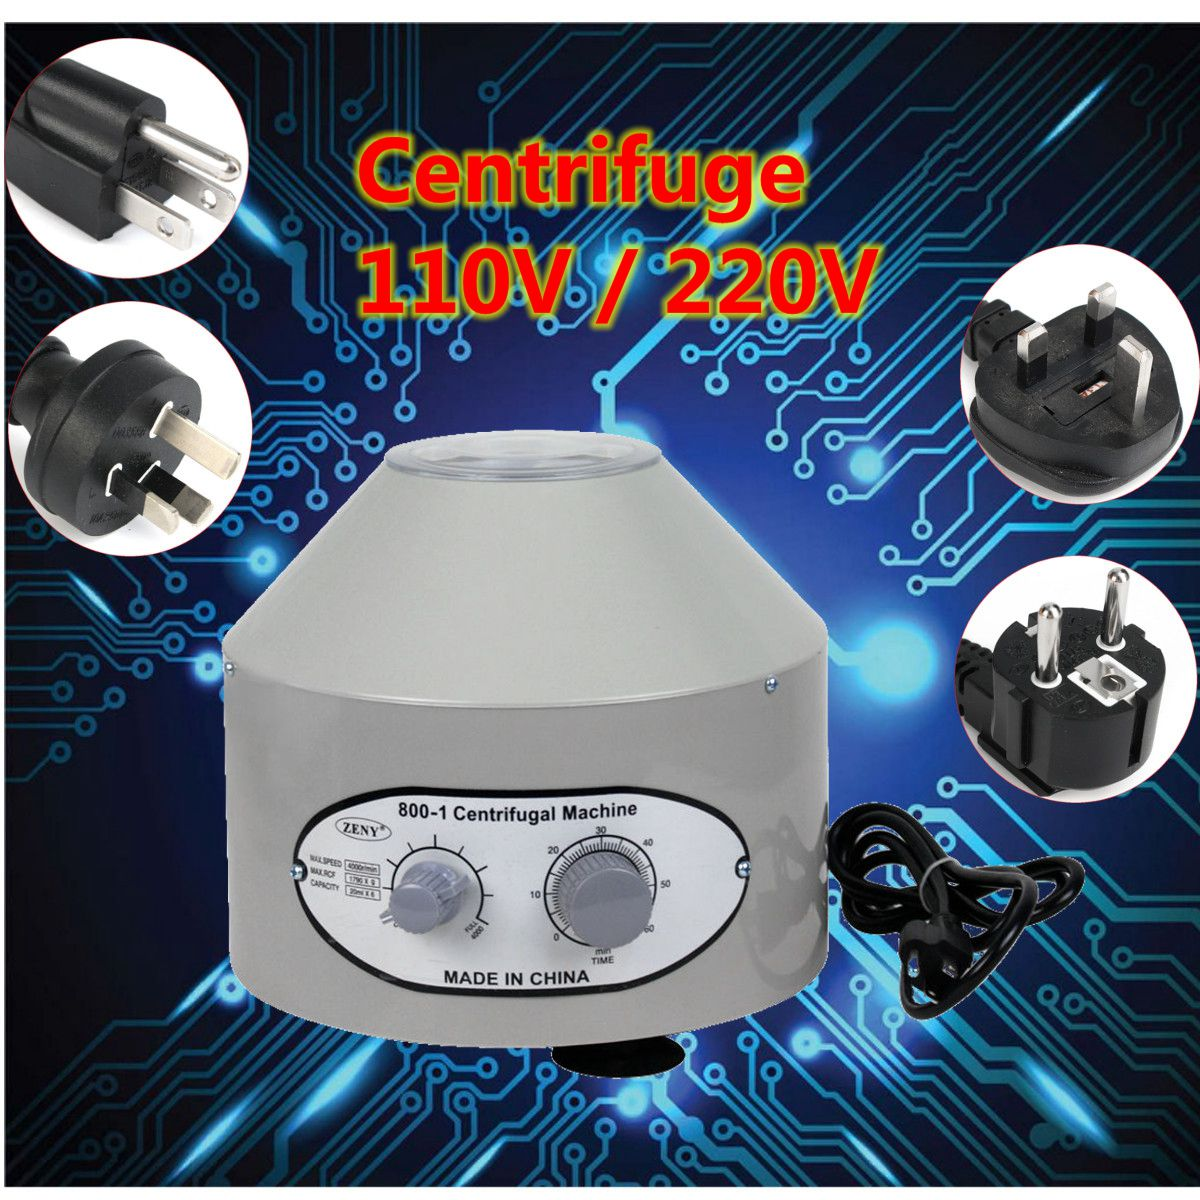 Desktop 800-1 110V/220V 4000Rpm Electric Centrifuge Laboratory Medical Practice Lab Centrifuge Electrical Equipment 220v 800d electric centrifuge 4000r min 25w laboratory lab medical practice desktop laboratory centrifuge machine